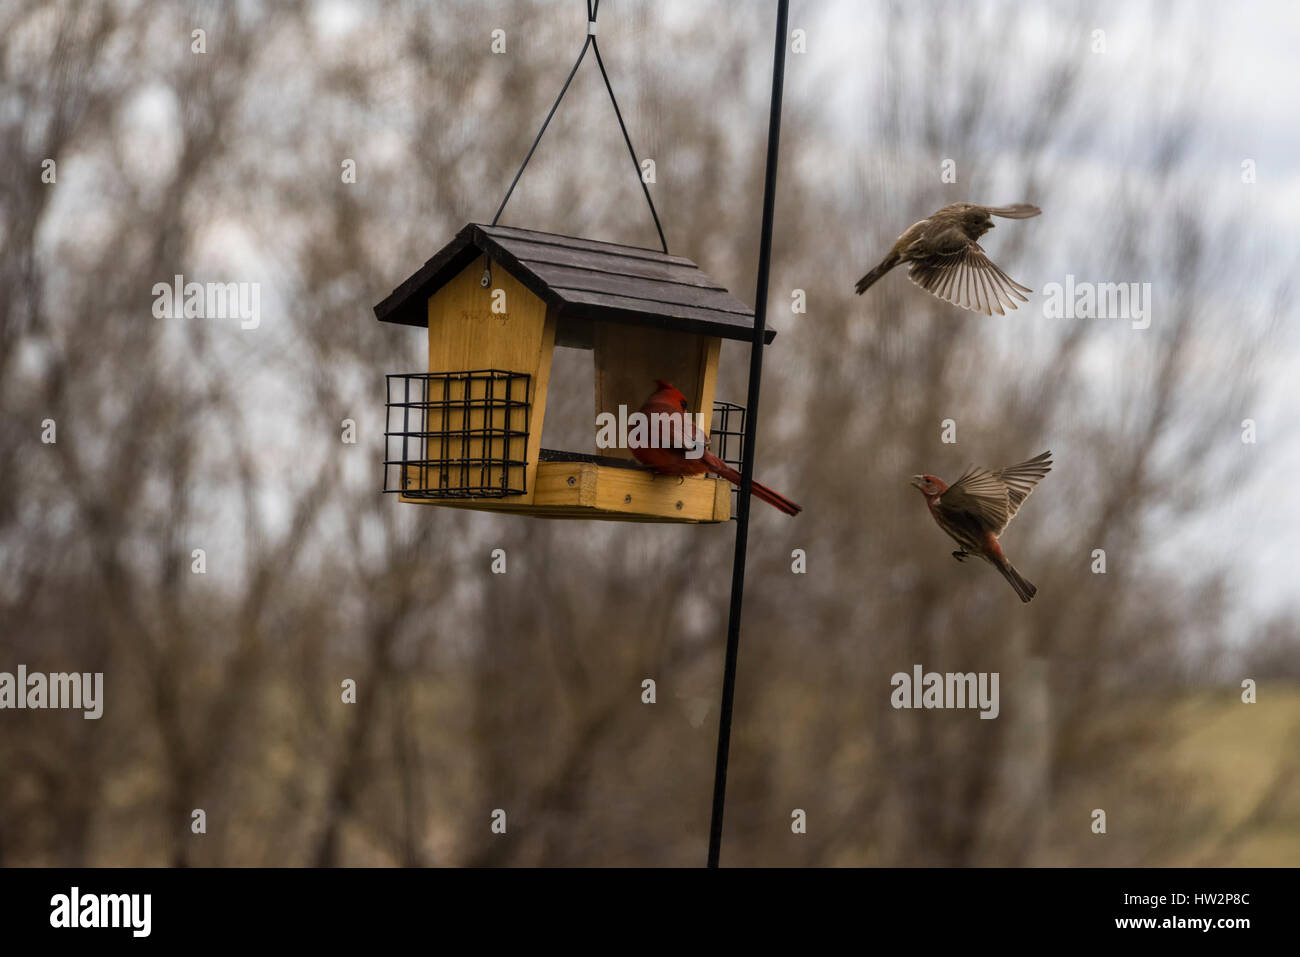 Birds at the feeder while  other birds freeze framed in mid air - Stock Image